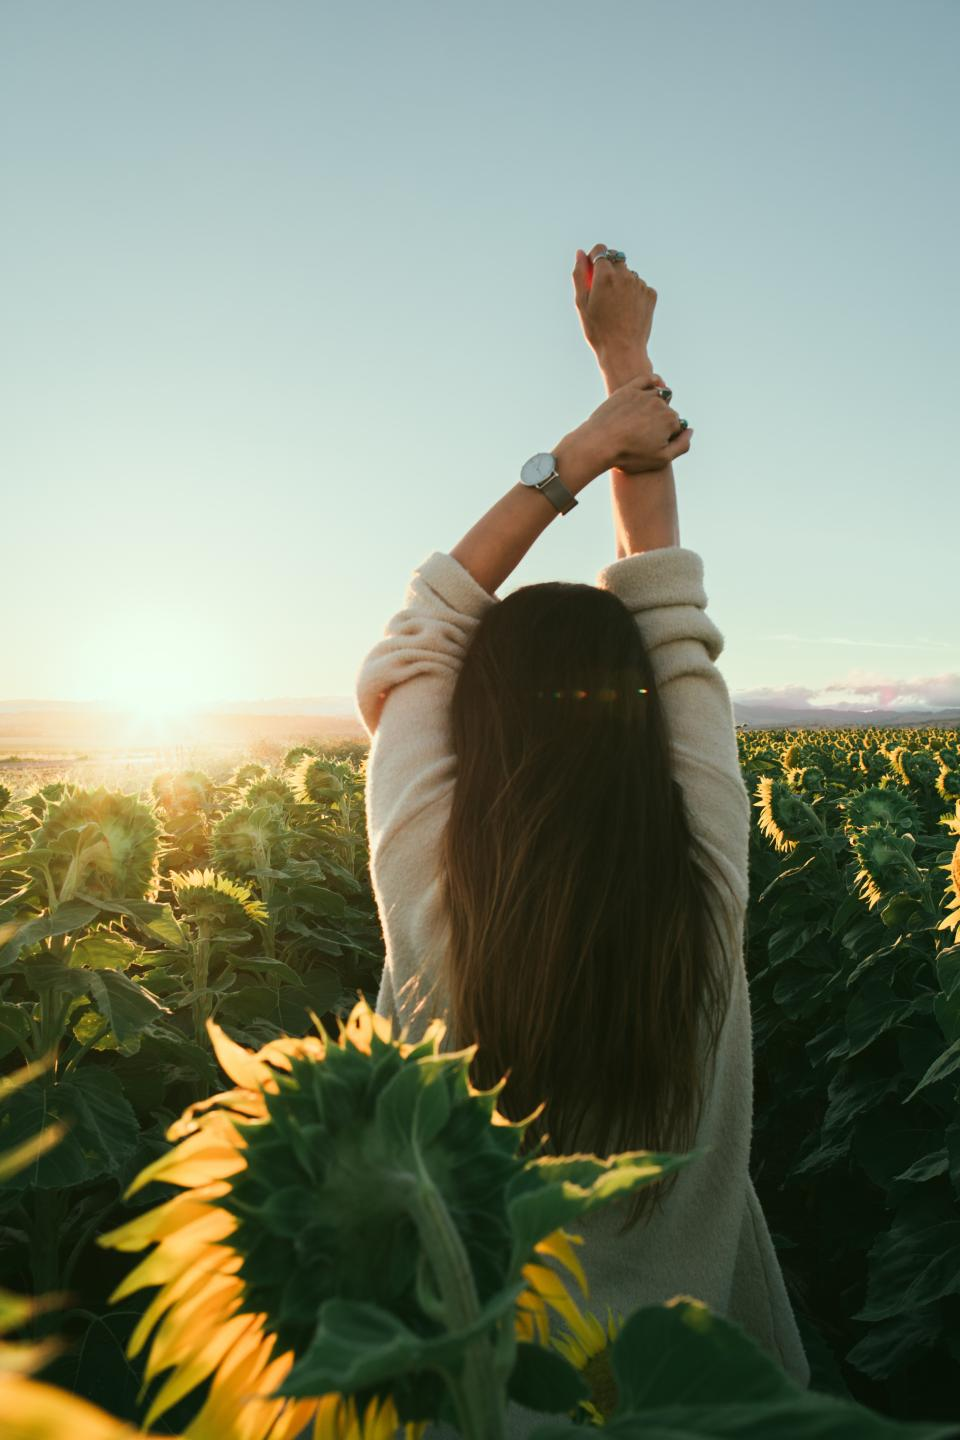 flower, yellow, petal, bloom, garden, plant, nature, autumn, fall, sunflower, people, woman, morning, sun, stretch, watch, accessory